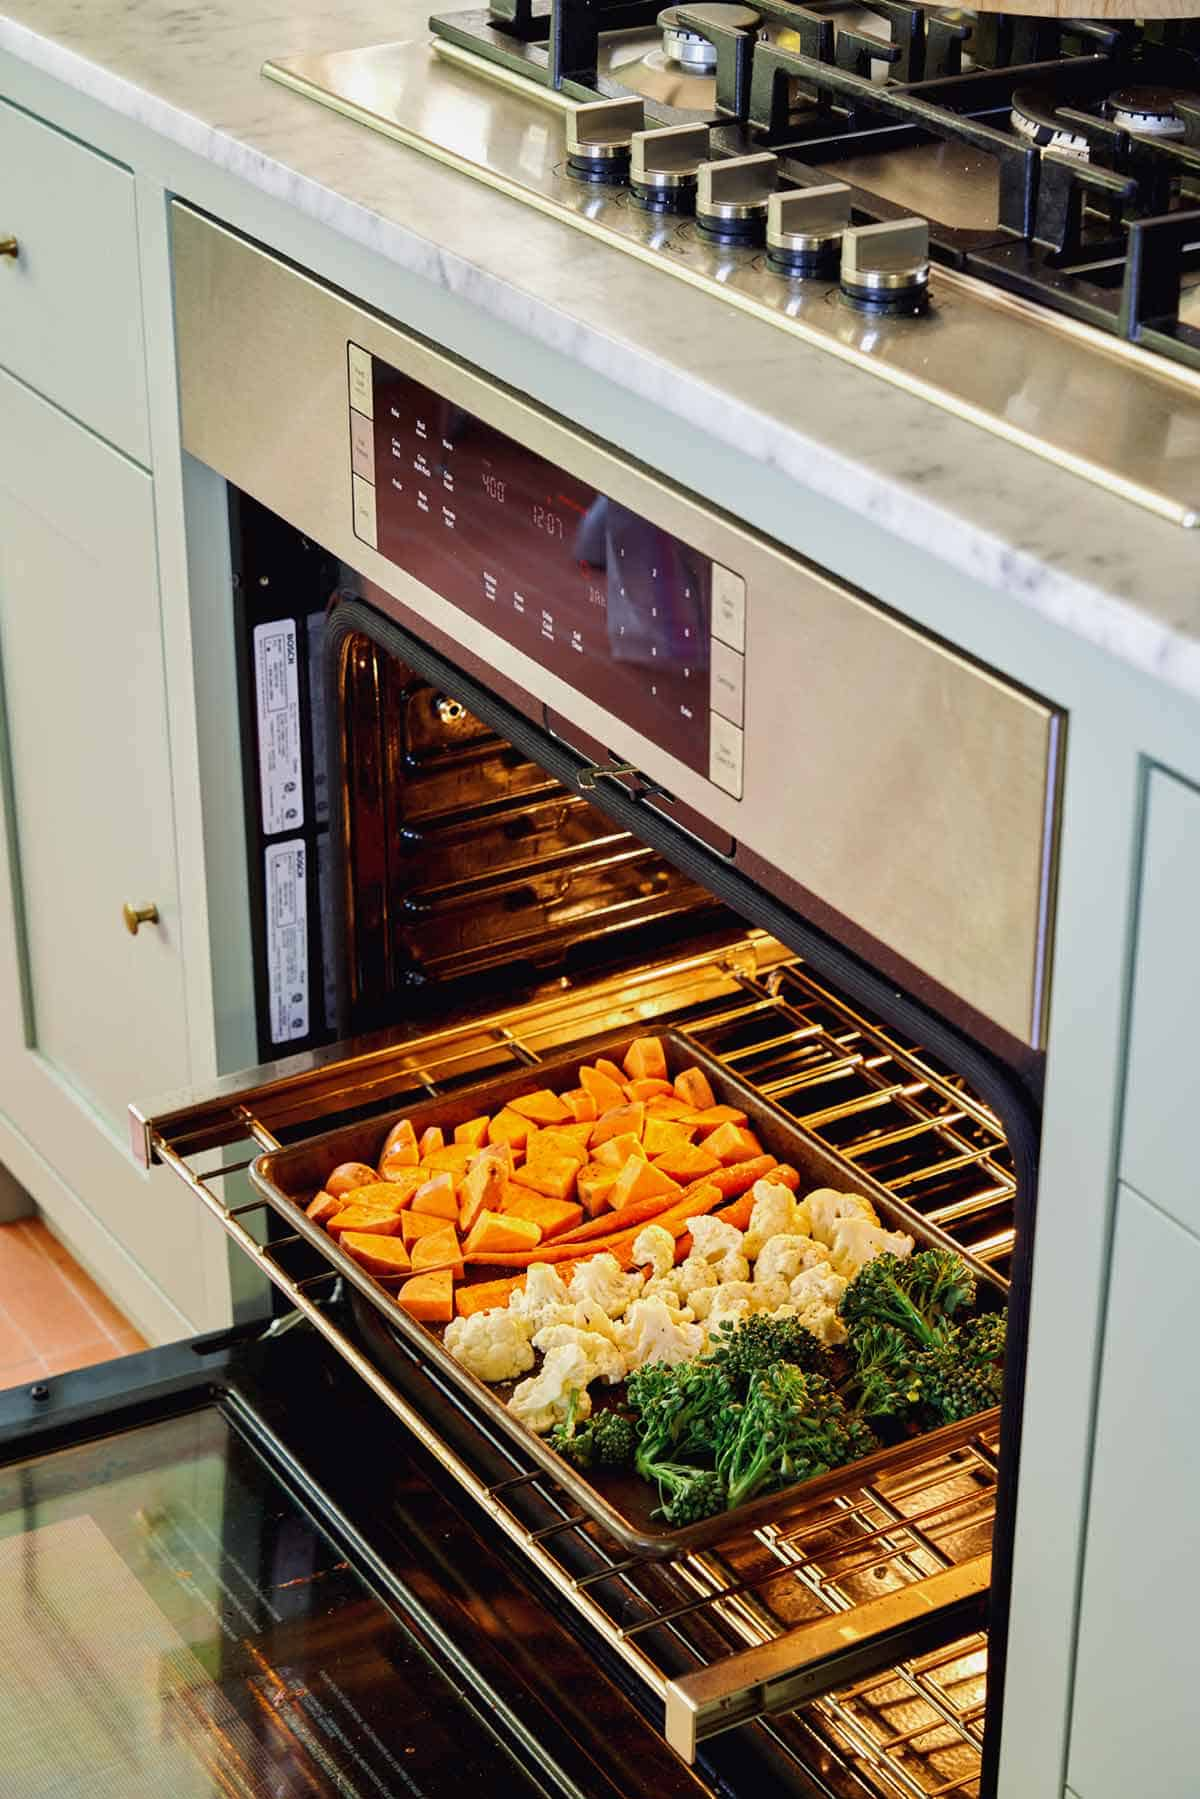 A sheet pan of vegetables going into an oven to roast.